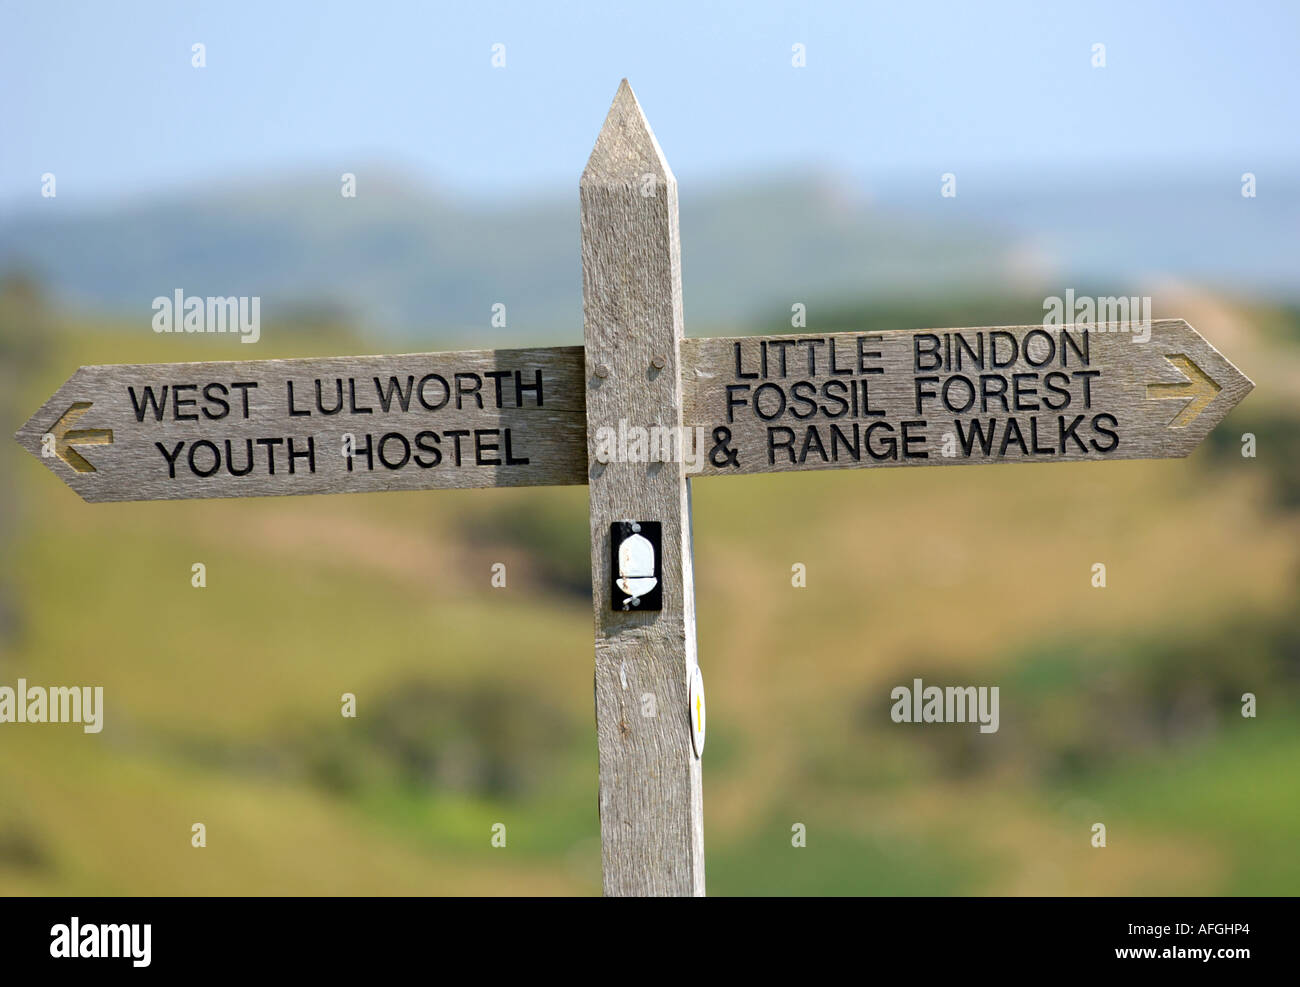 Signpost for West Lulworth Youth Hostel and forest and range walks, Dorset, Britain, UK - Stock Image